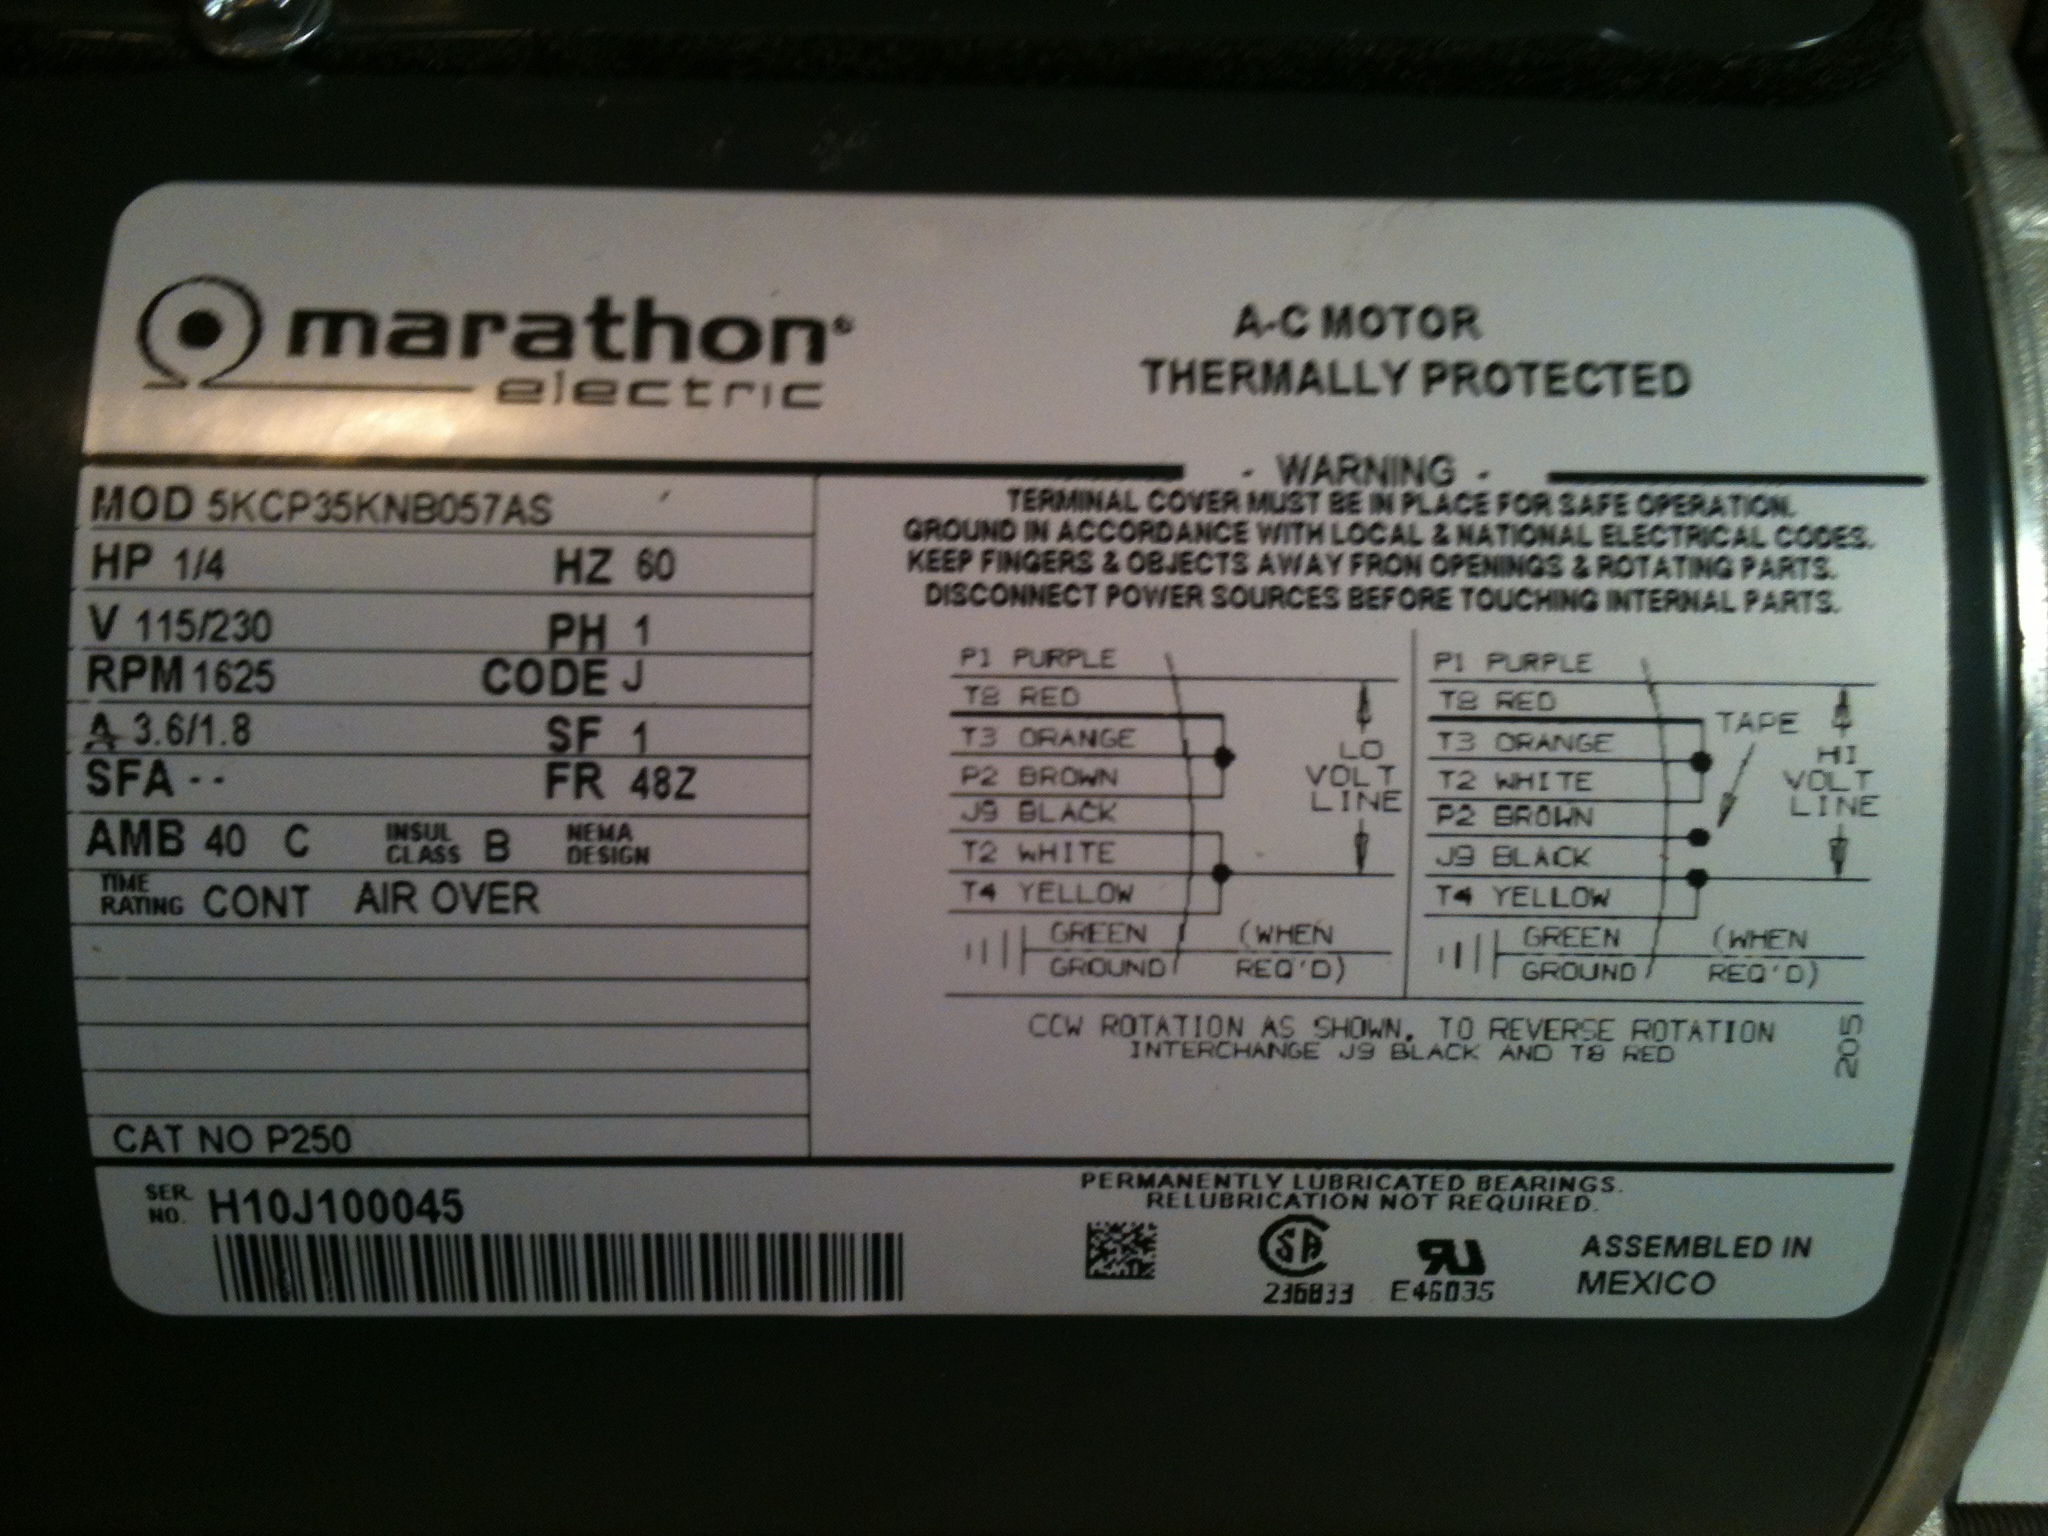 2012 01 24_021217_marathonmotor i just bought a marathon electric ac motor, hp 1 4 v 115 230 115 volt motor wiring diagram at reclaimingppi.co